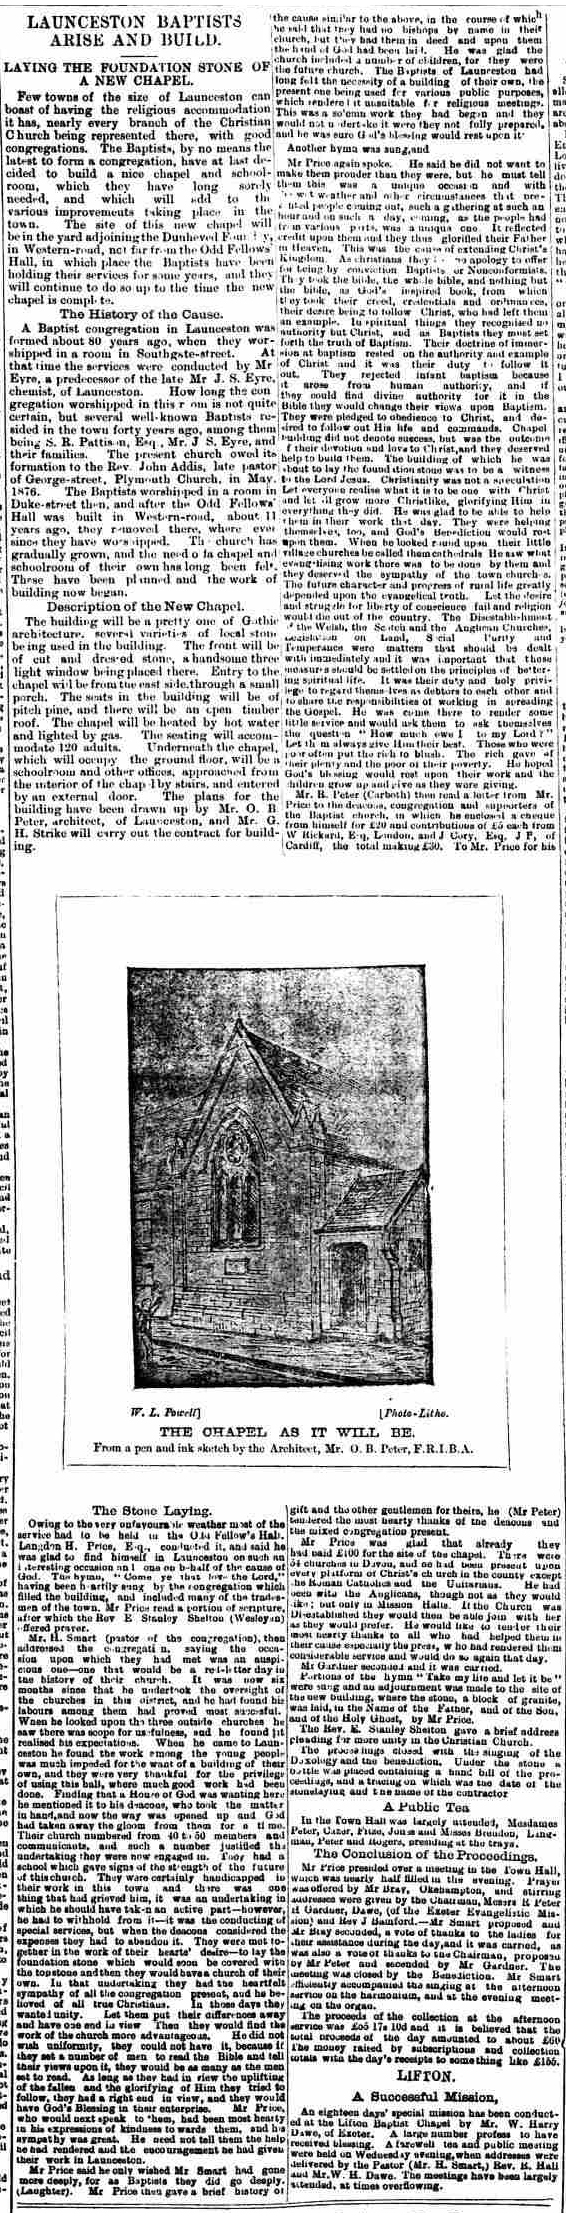 Baptist Church, Western Road article18 March 1892